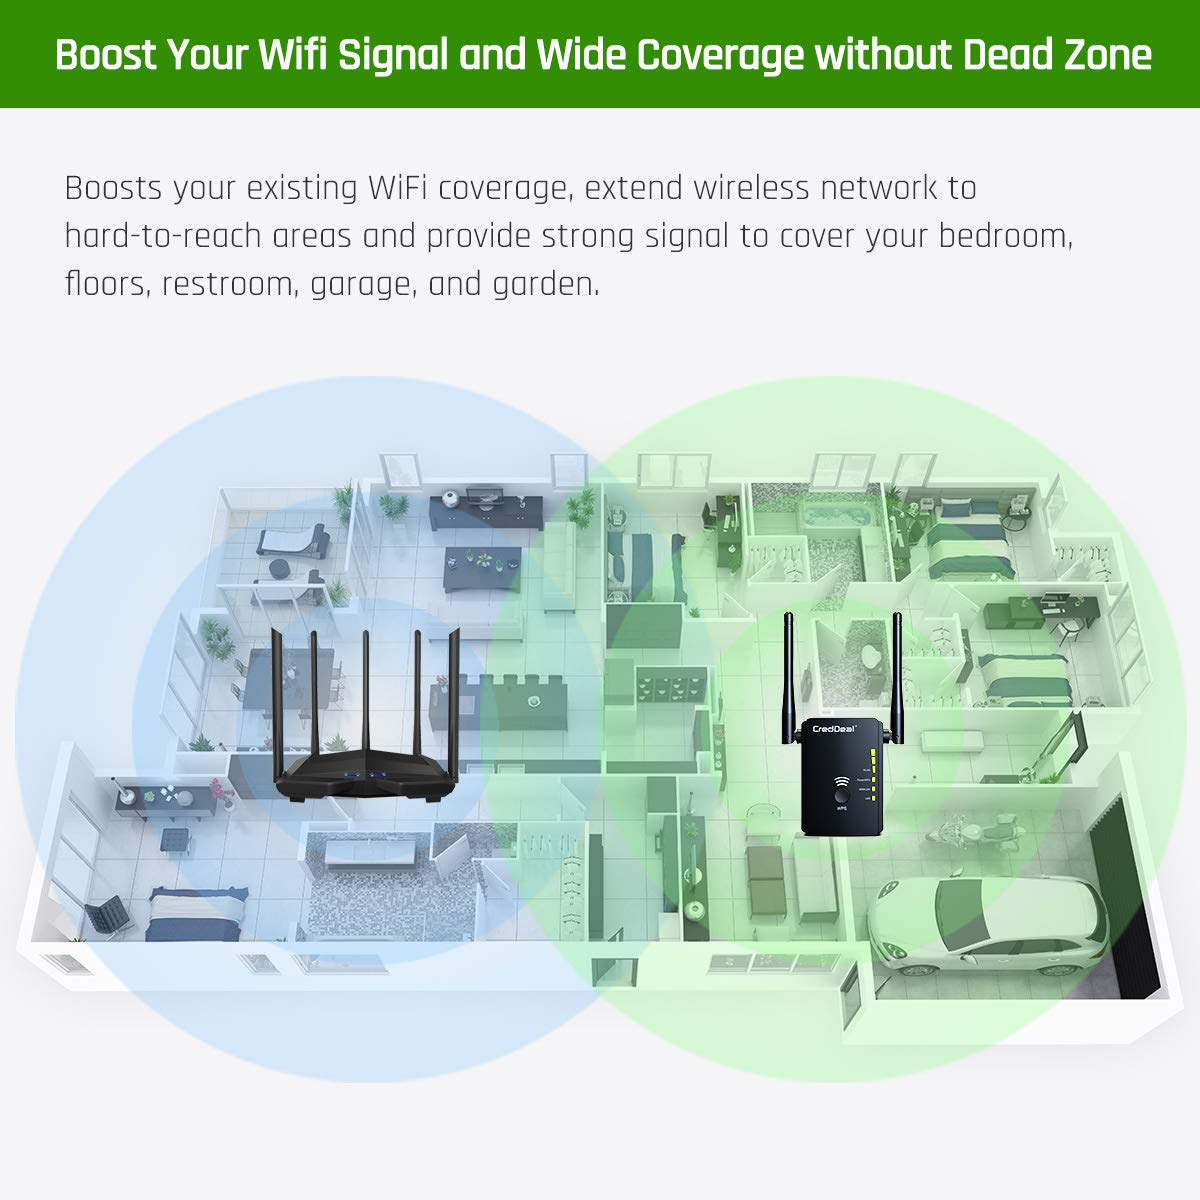 300Mpbs Wireless Booster with 2.4GHz High Gain Dual Antennas 2 Ethernet Ports Black WiFi Range Extender with WPS Internet Signal Repeater Compatible with Alexa Device for Covering Whole Home